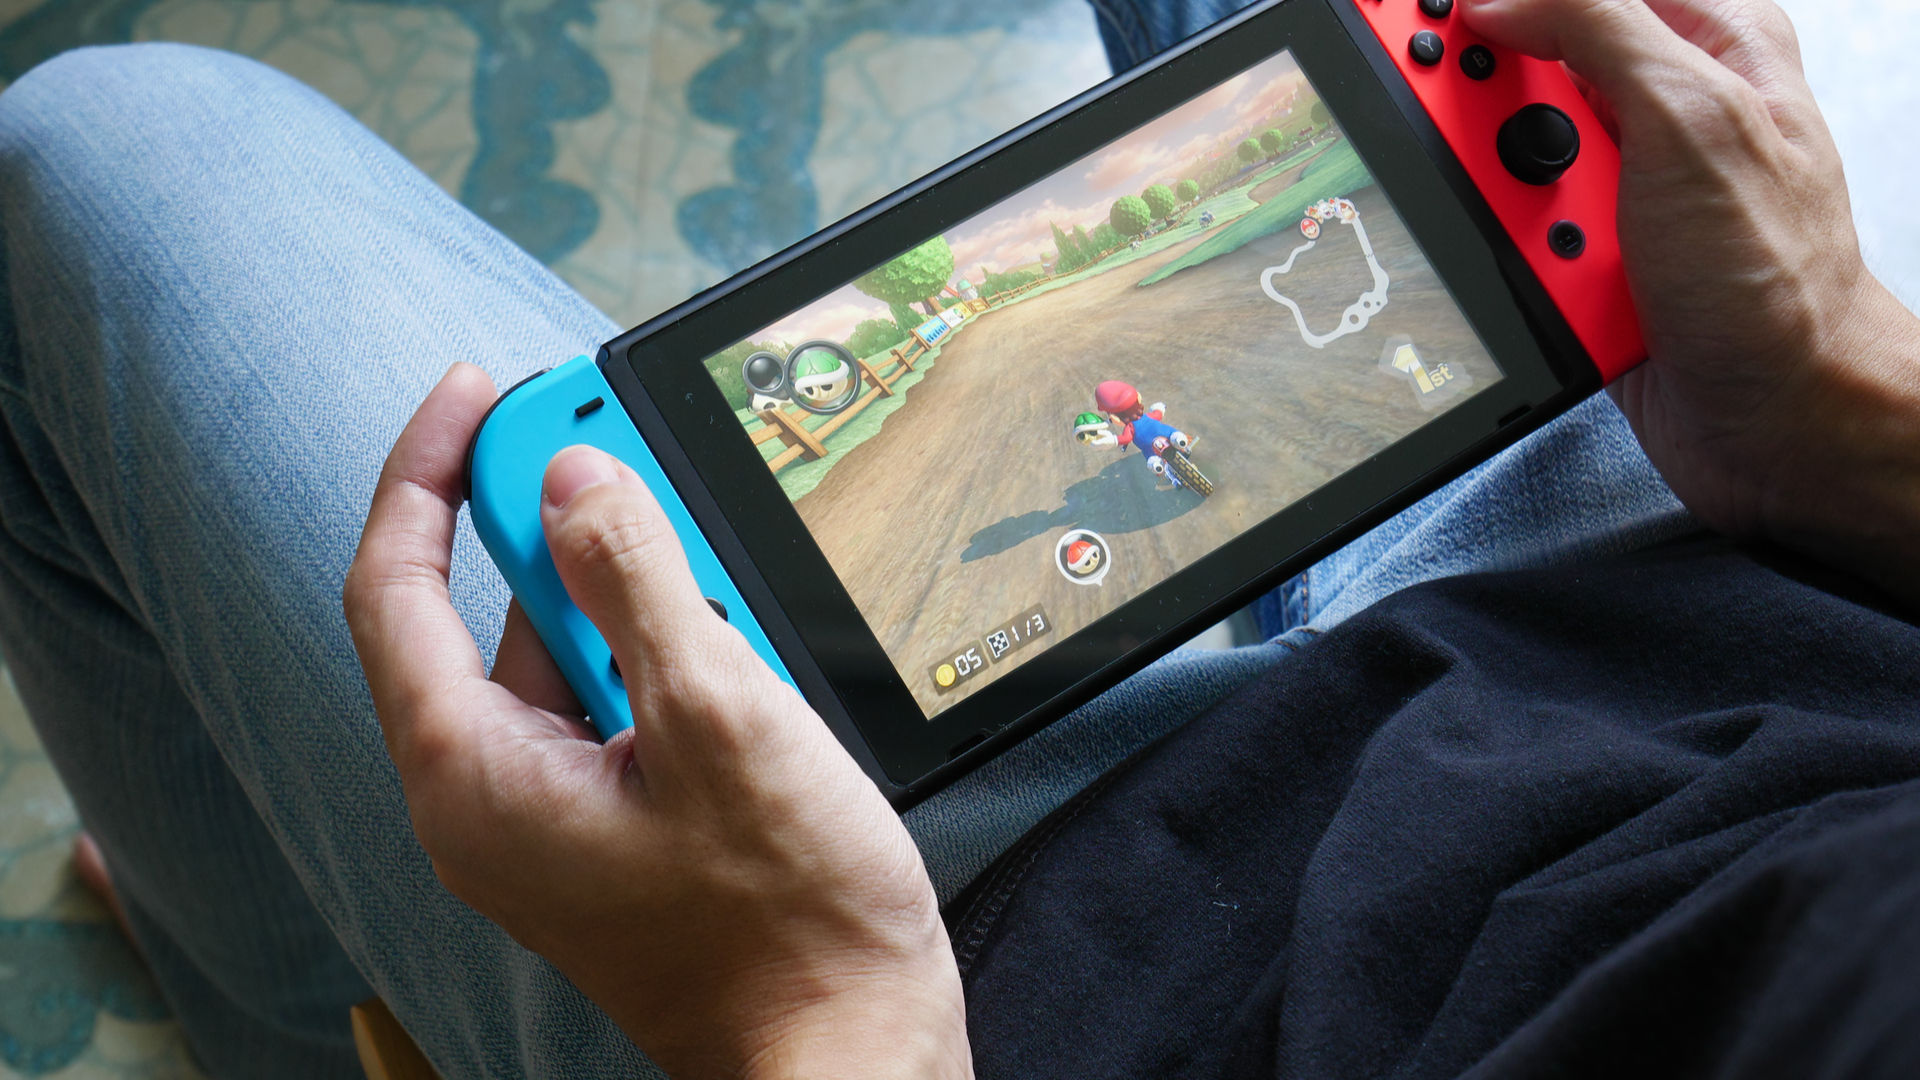 Standard Nintendo Switch might get a price drop ahead of OLED model